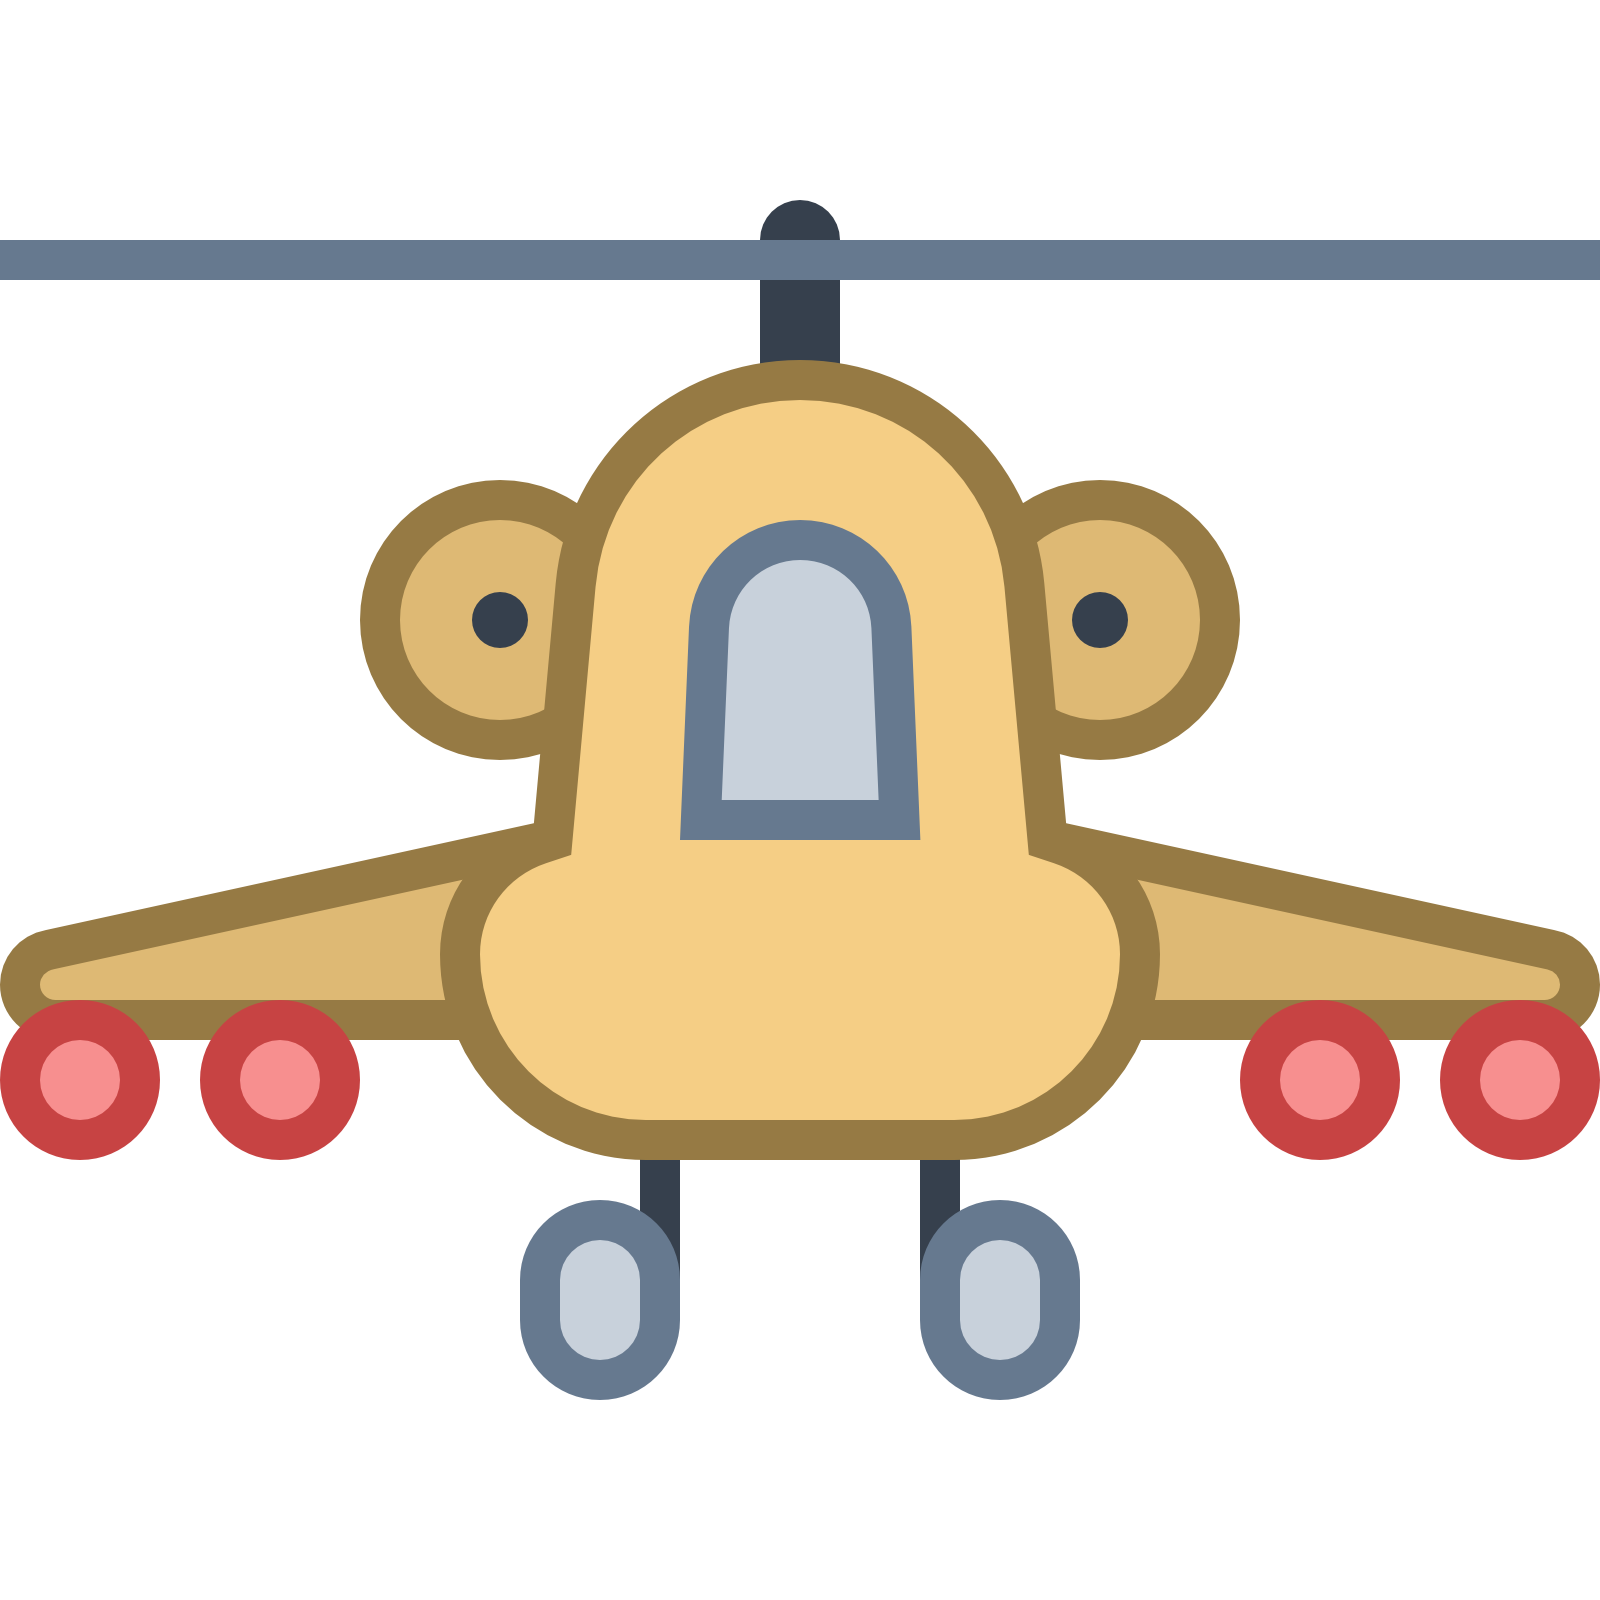 clipart freeuse Airplane around the world clipart. Fighter plane at getdrawings